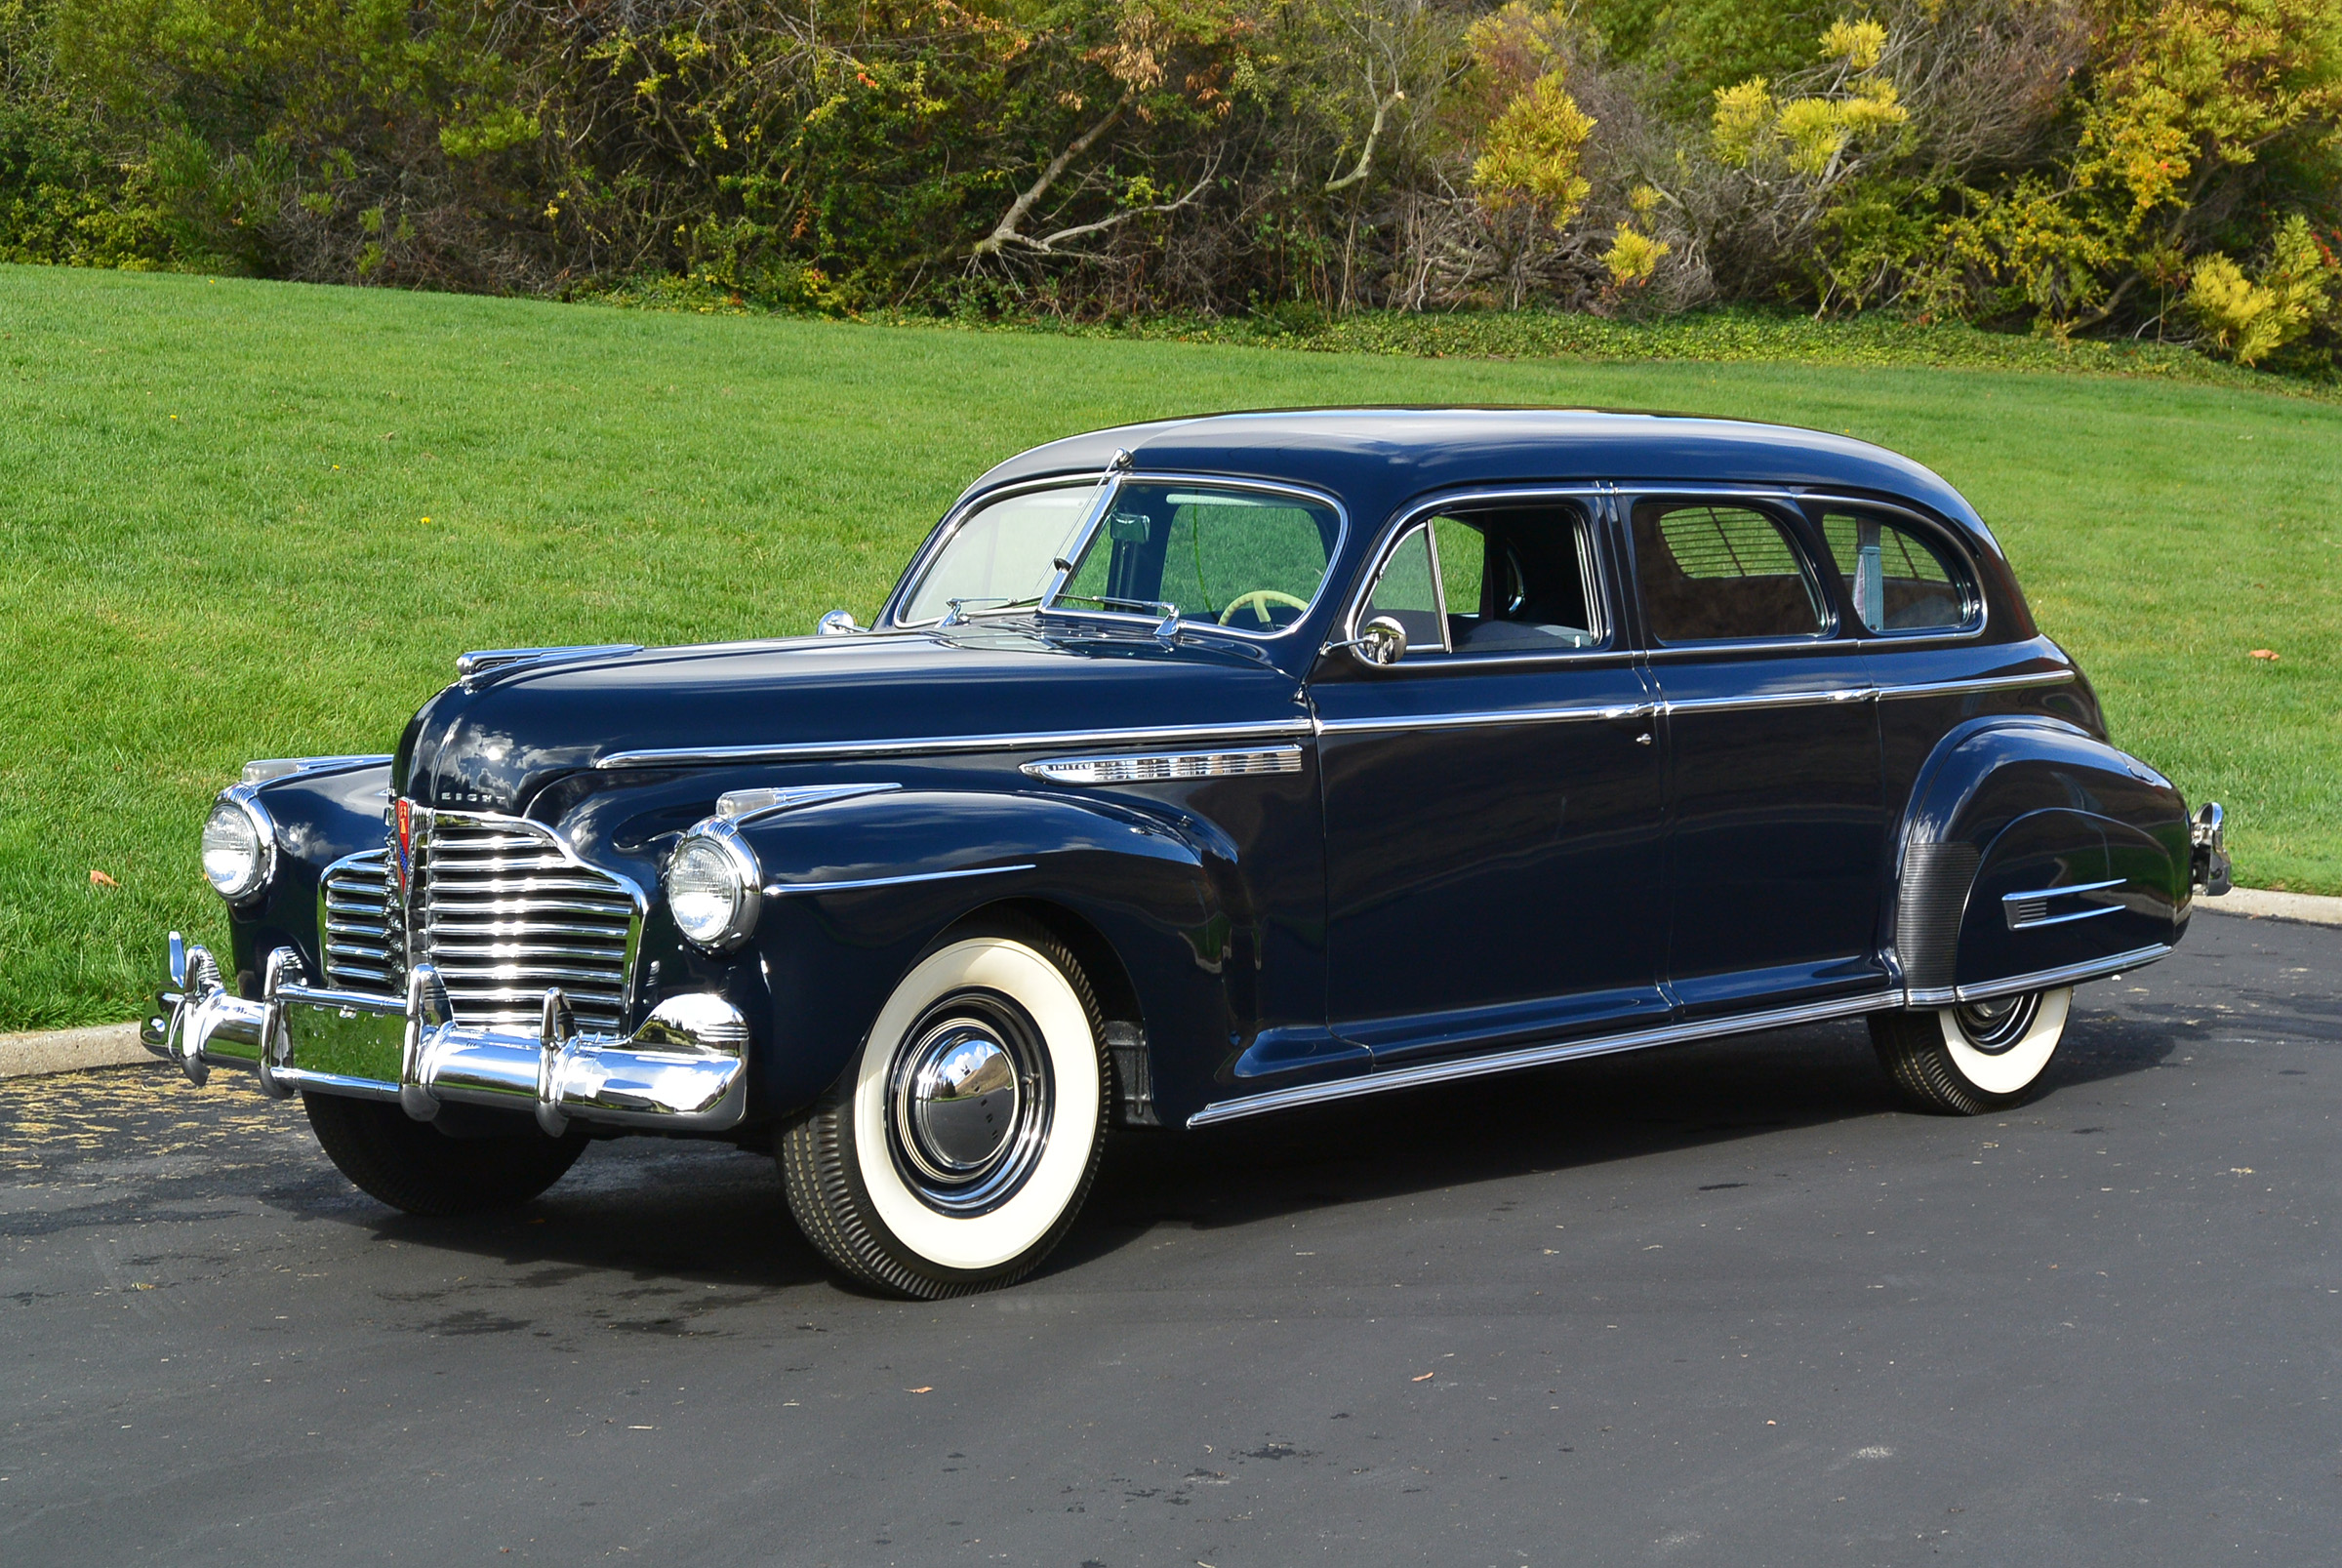 1941 Buick Model 91 Limited Sedan (22) | Blackhawk Collection